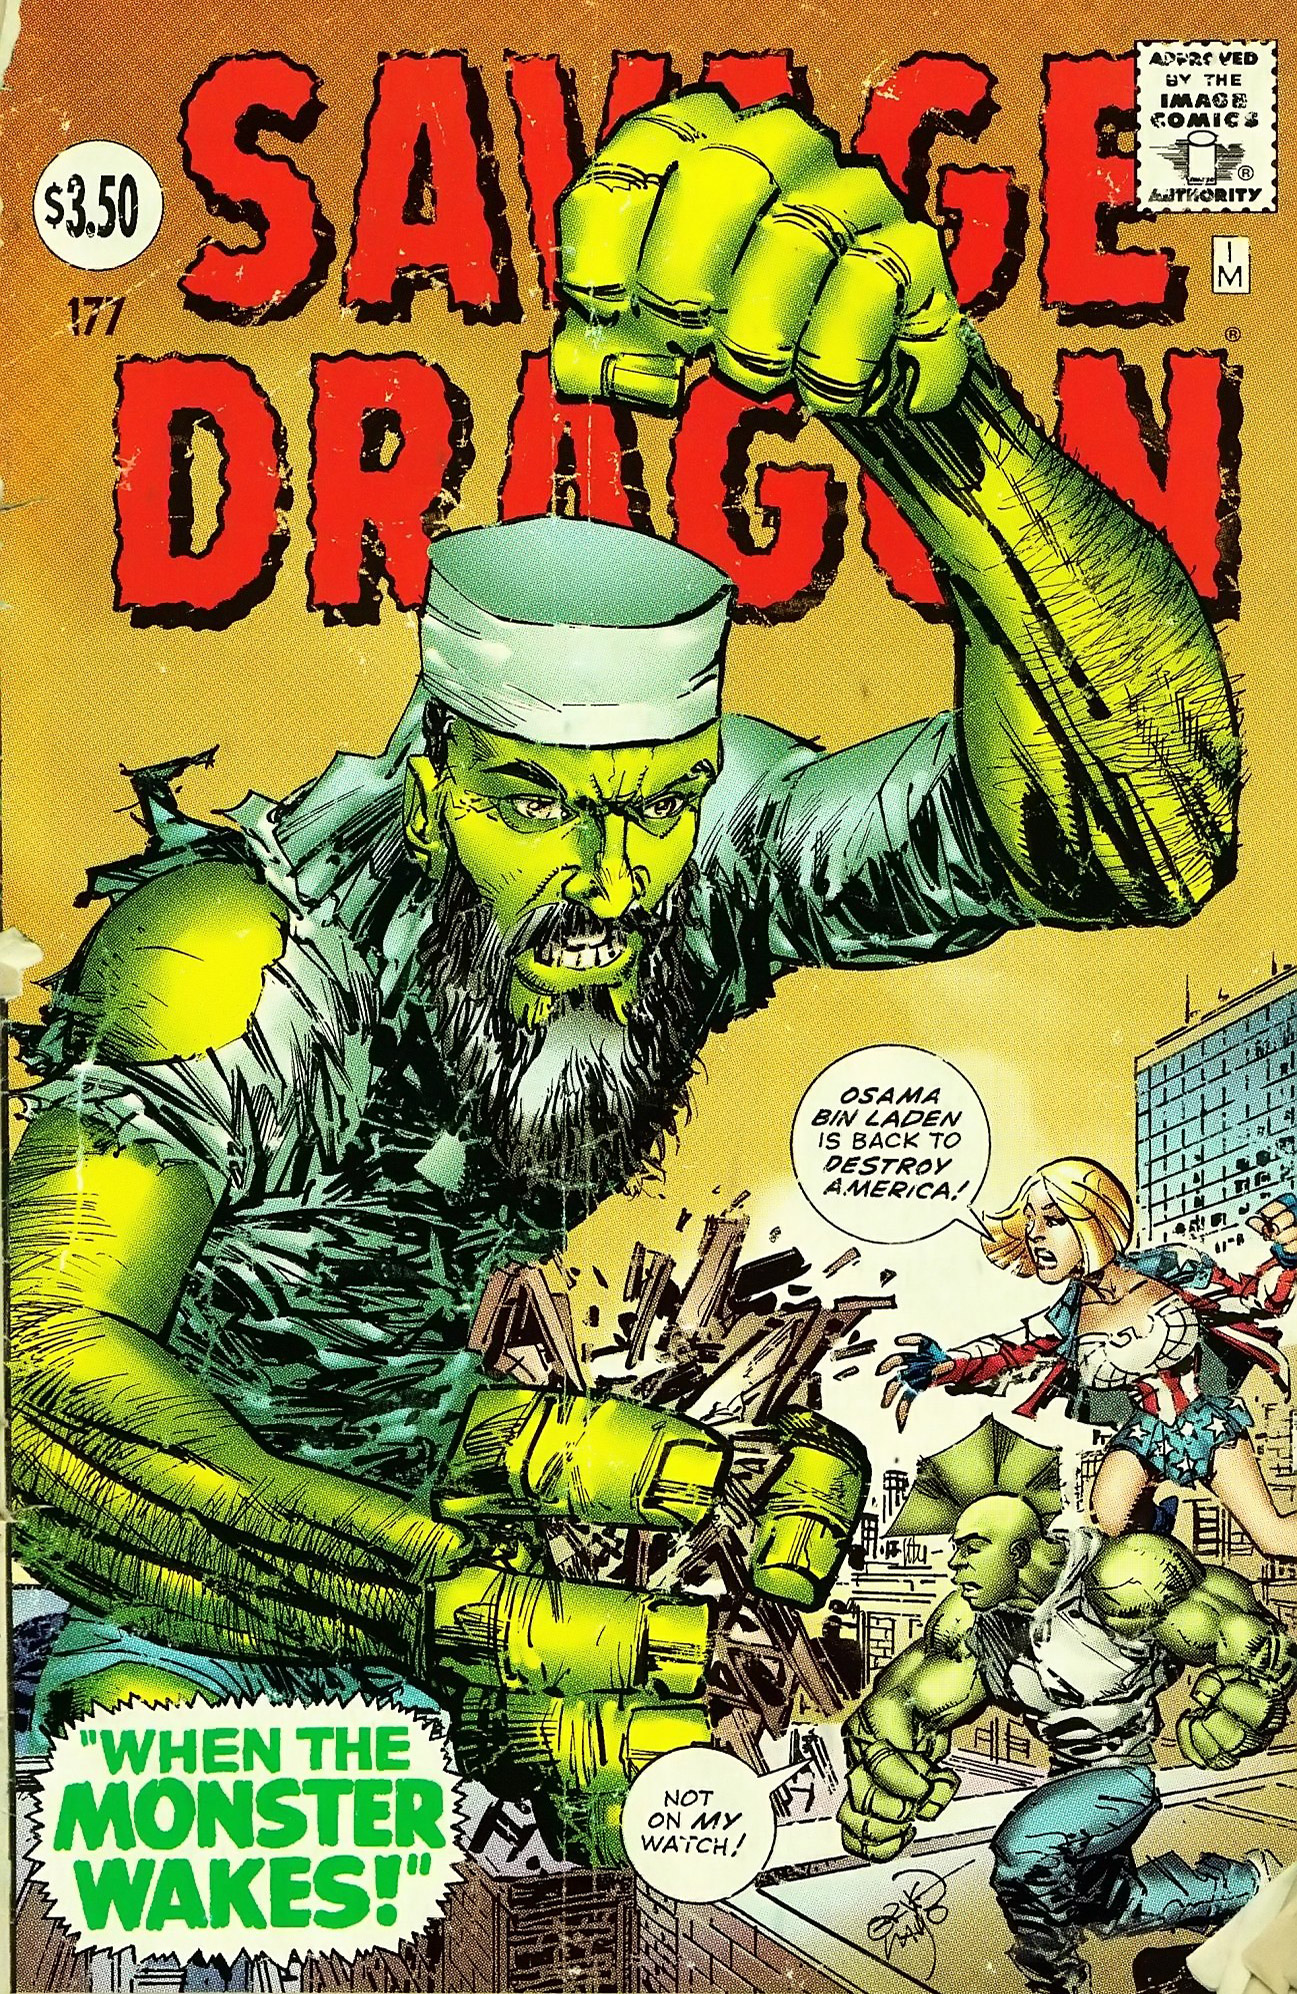 Cover Savage Dragon Vol.2 #177